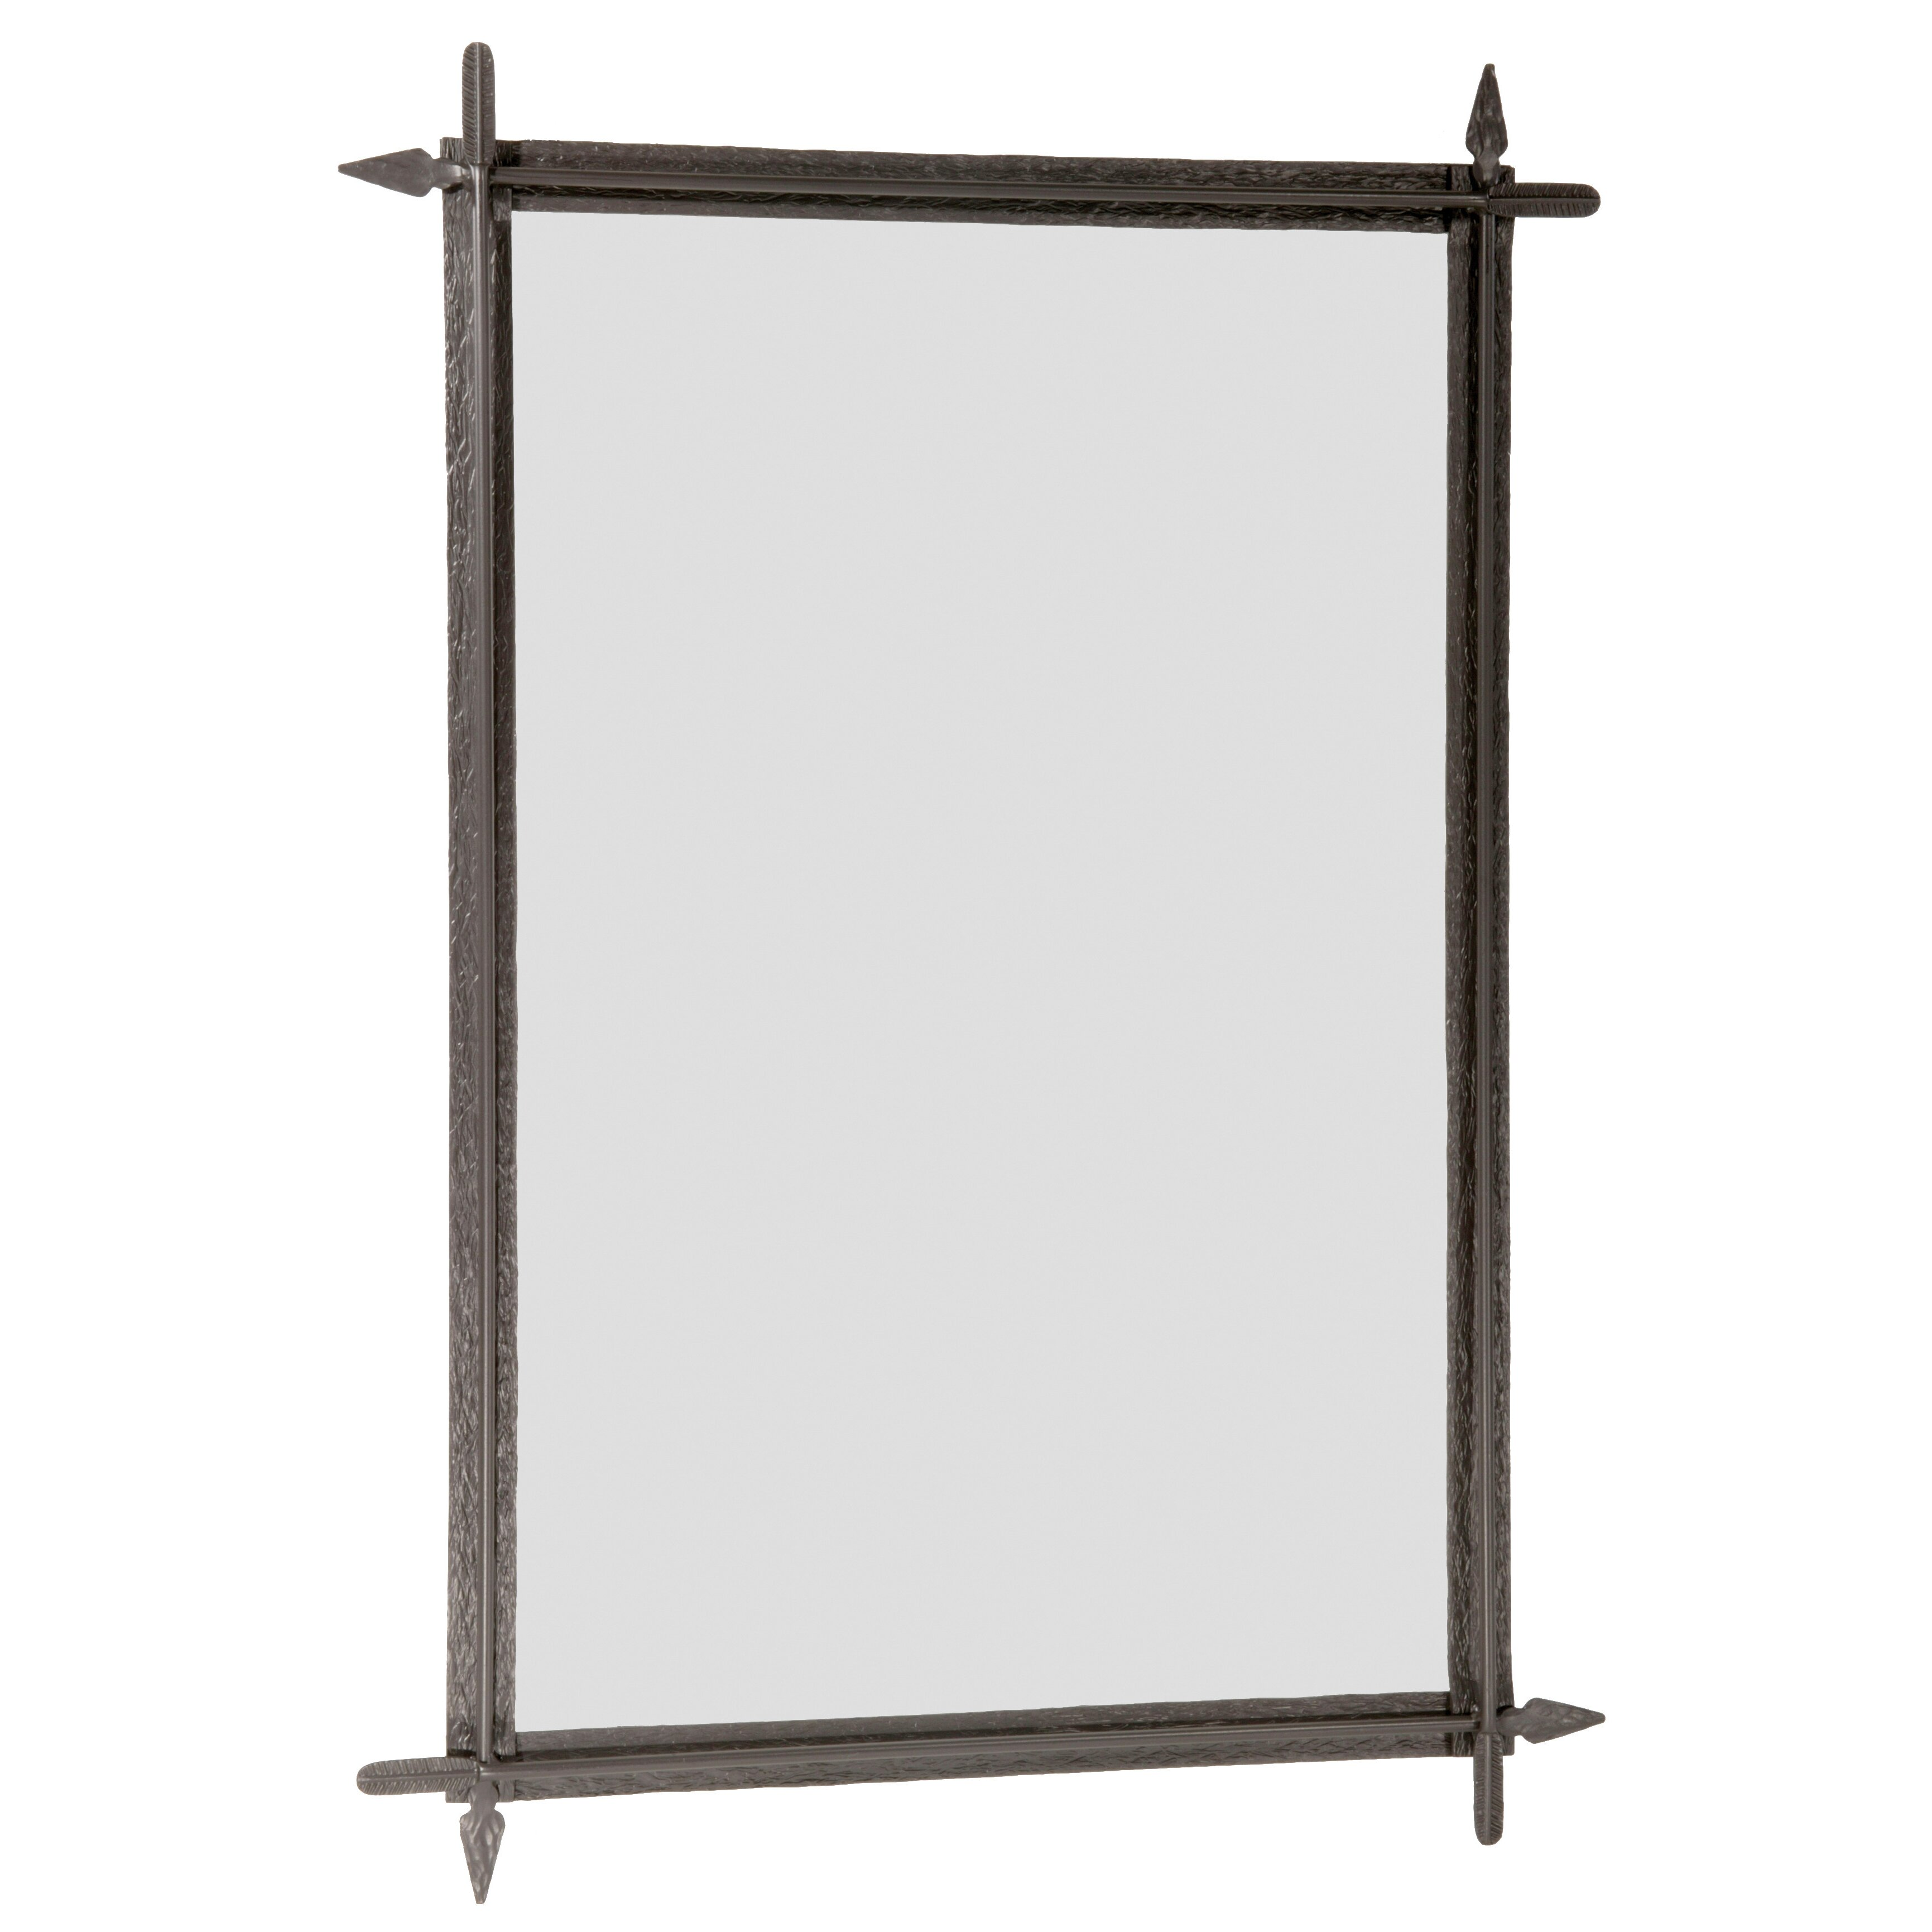 Stone county ironworks quapaw small wall mirror wayfair for Small wall mirrors